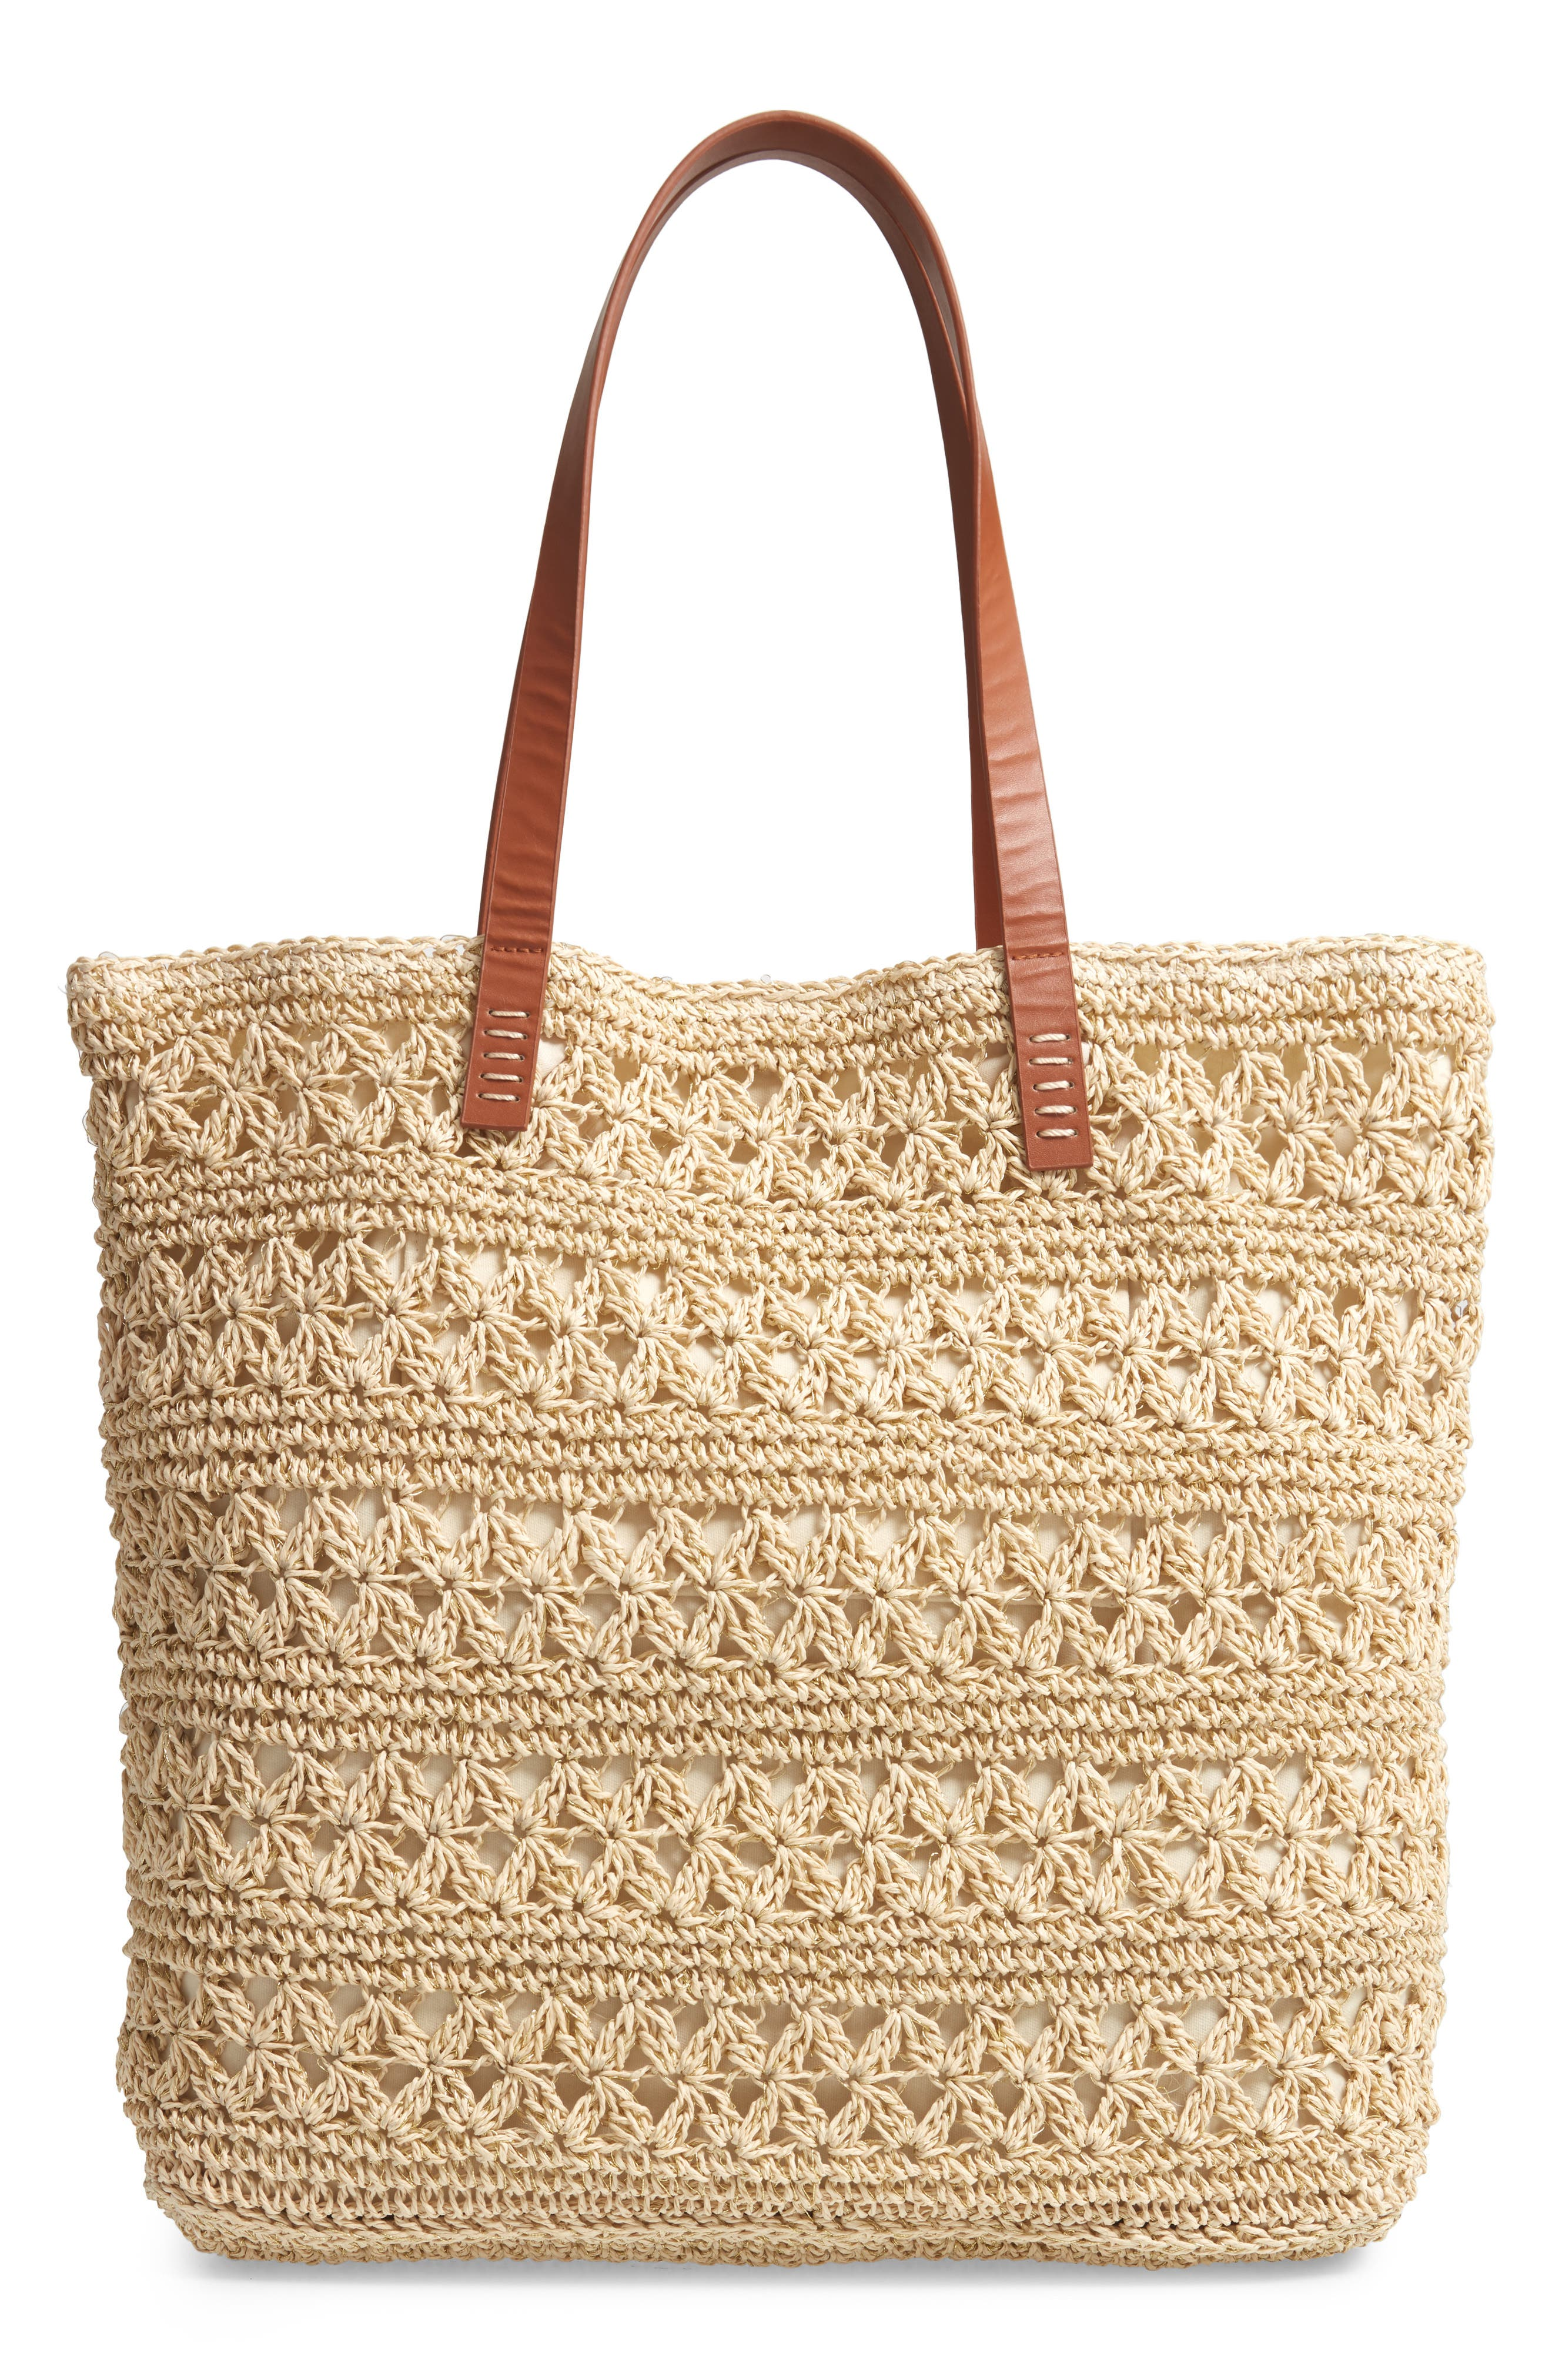 NORDSTROM Packable Woven Raffia Tote, Main, color, NATURAL